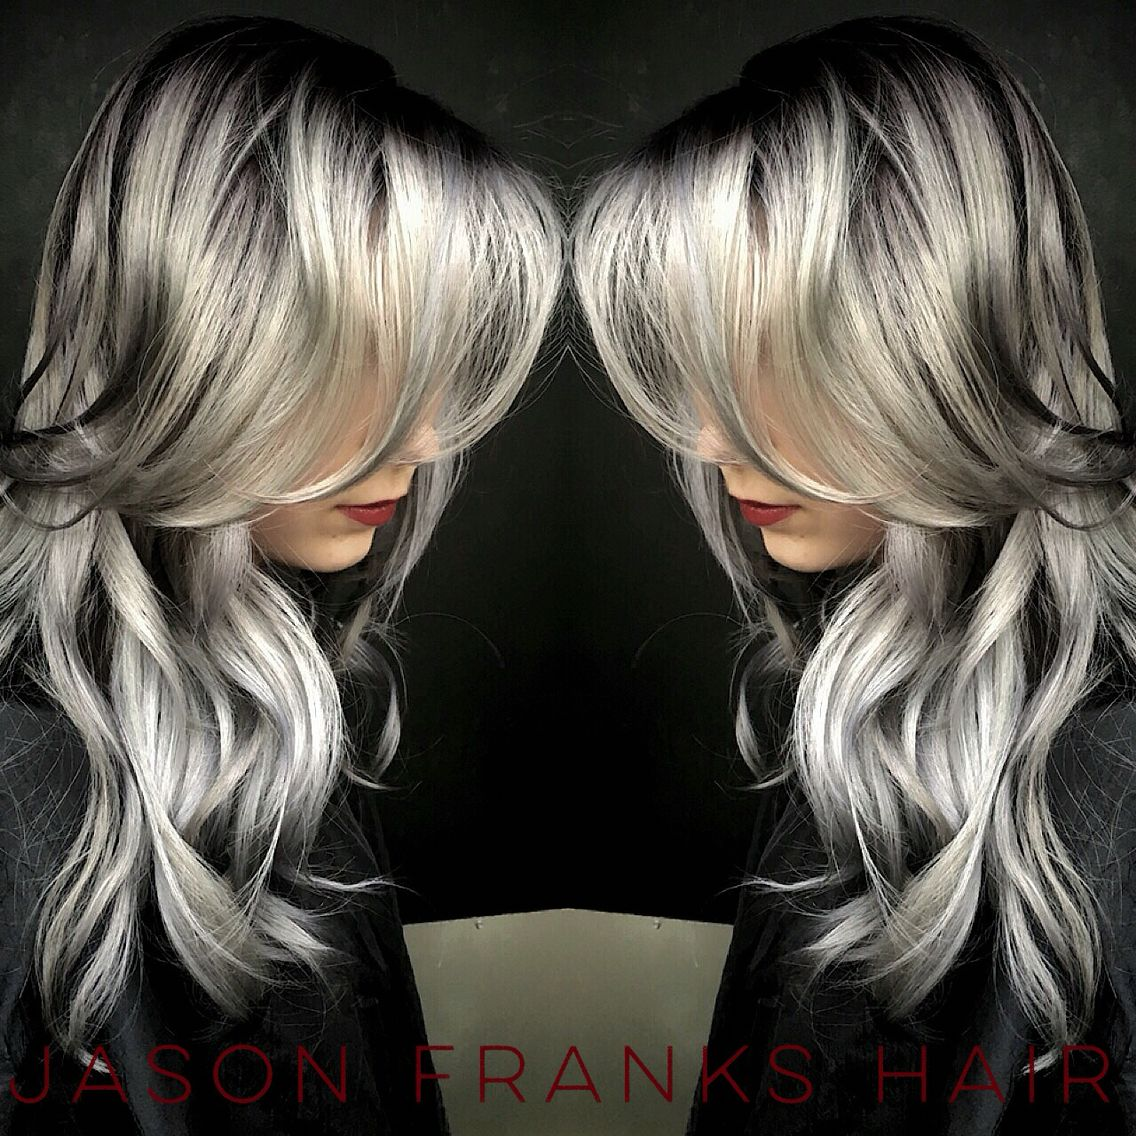 Crystal Ash Blonde Hair Color Ideas For Winter 2016: Grey Hair Chrome Hair Winter Fall 2015 2016 Hair Color